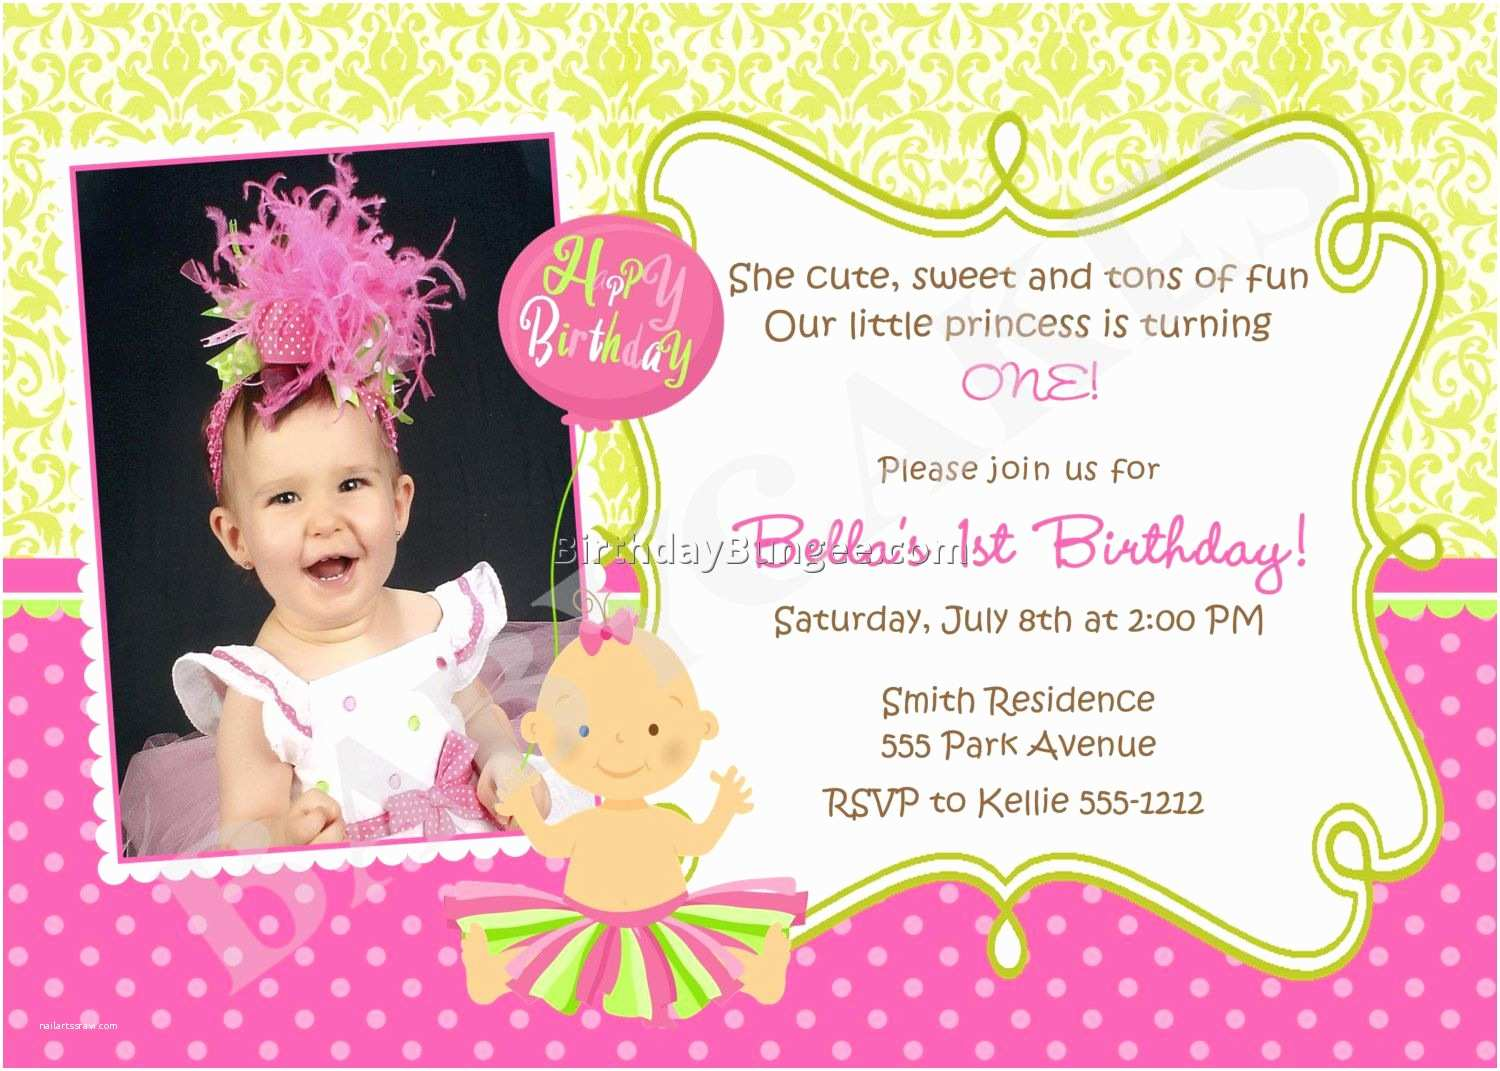 Party Invitation Text 21 Kids Birthday Invitation Wording that We Can Make